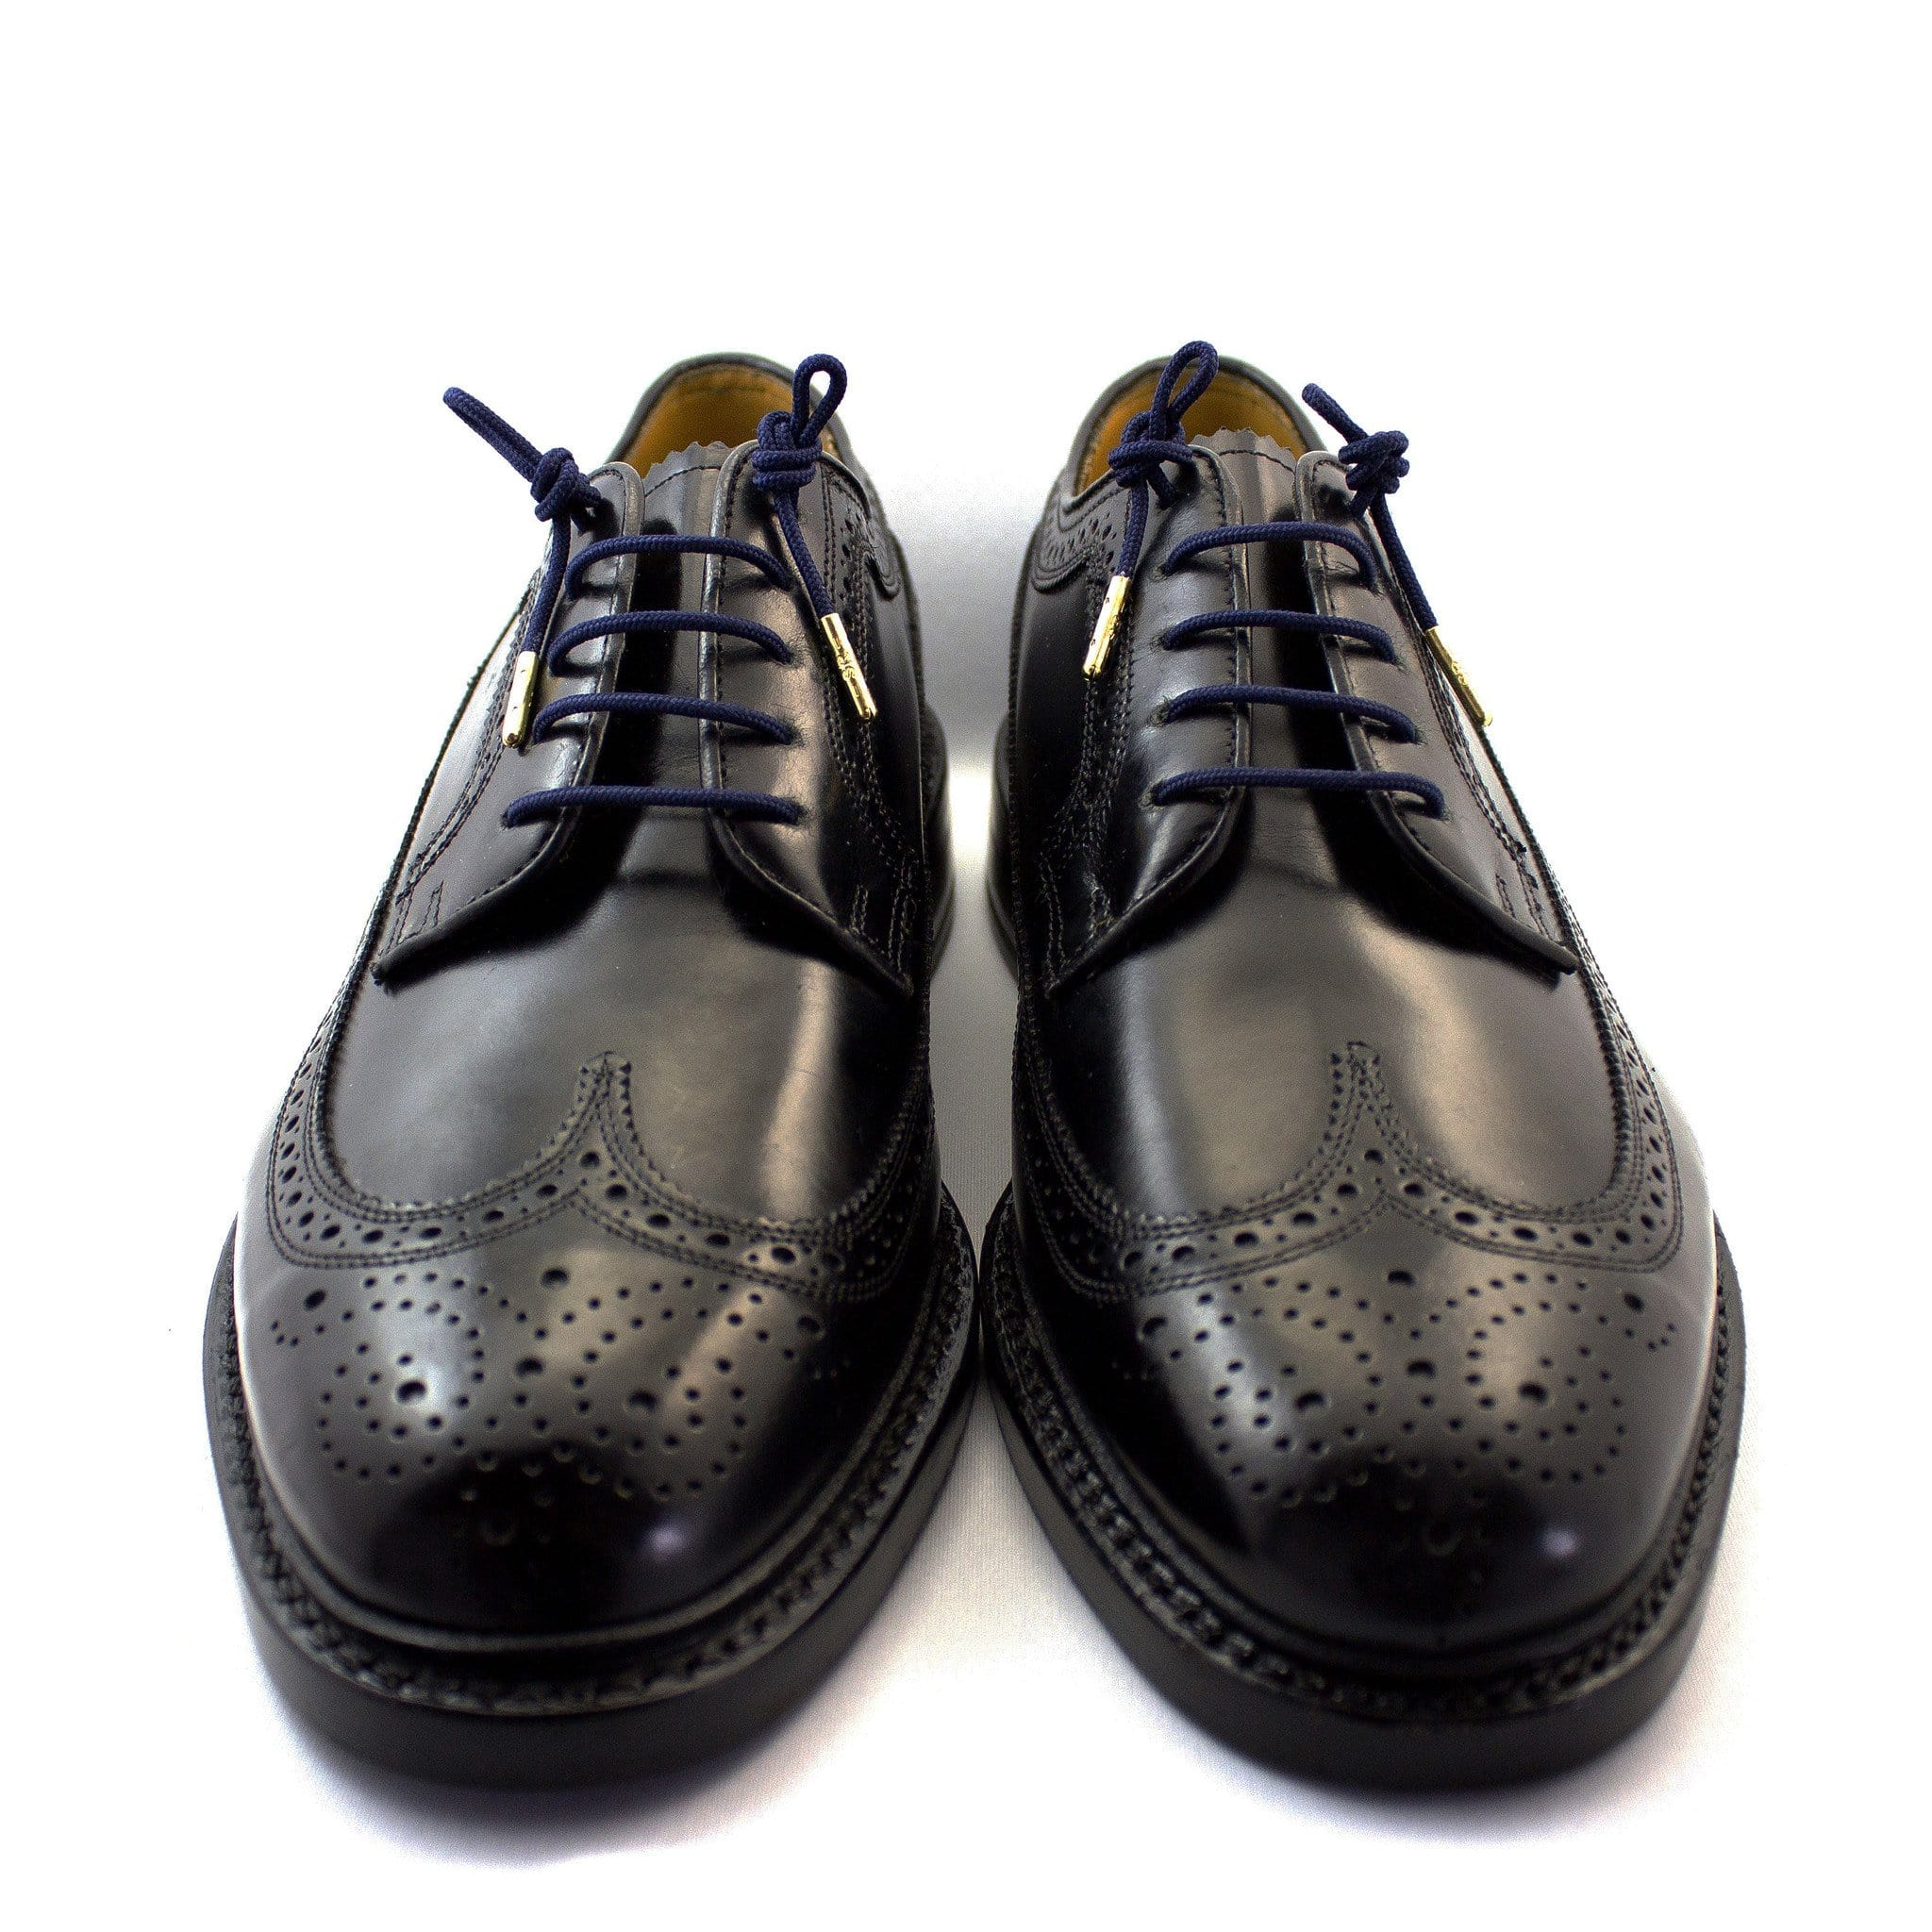 "Navy blue laces for dress shoes, Length: 27""/69cm-Stolen Riches"